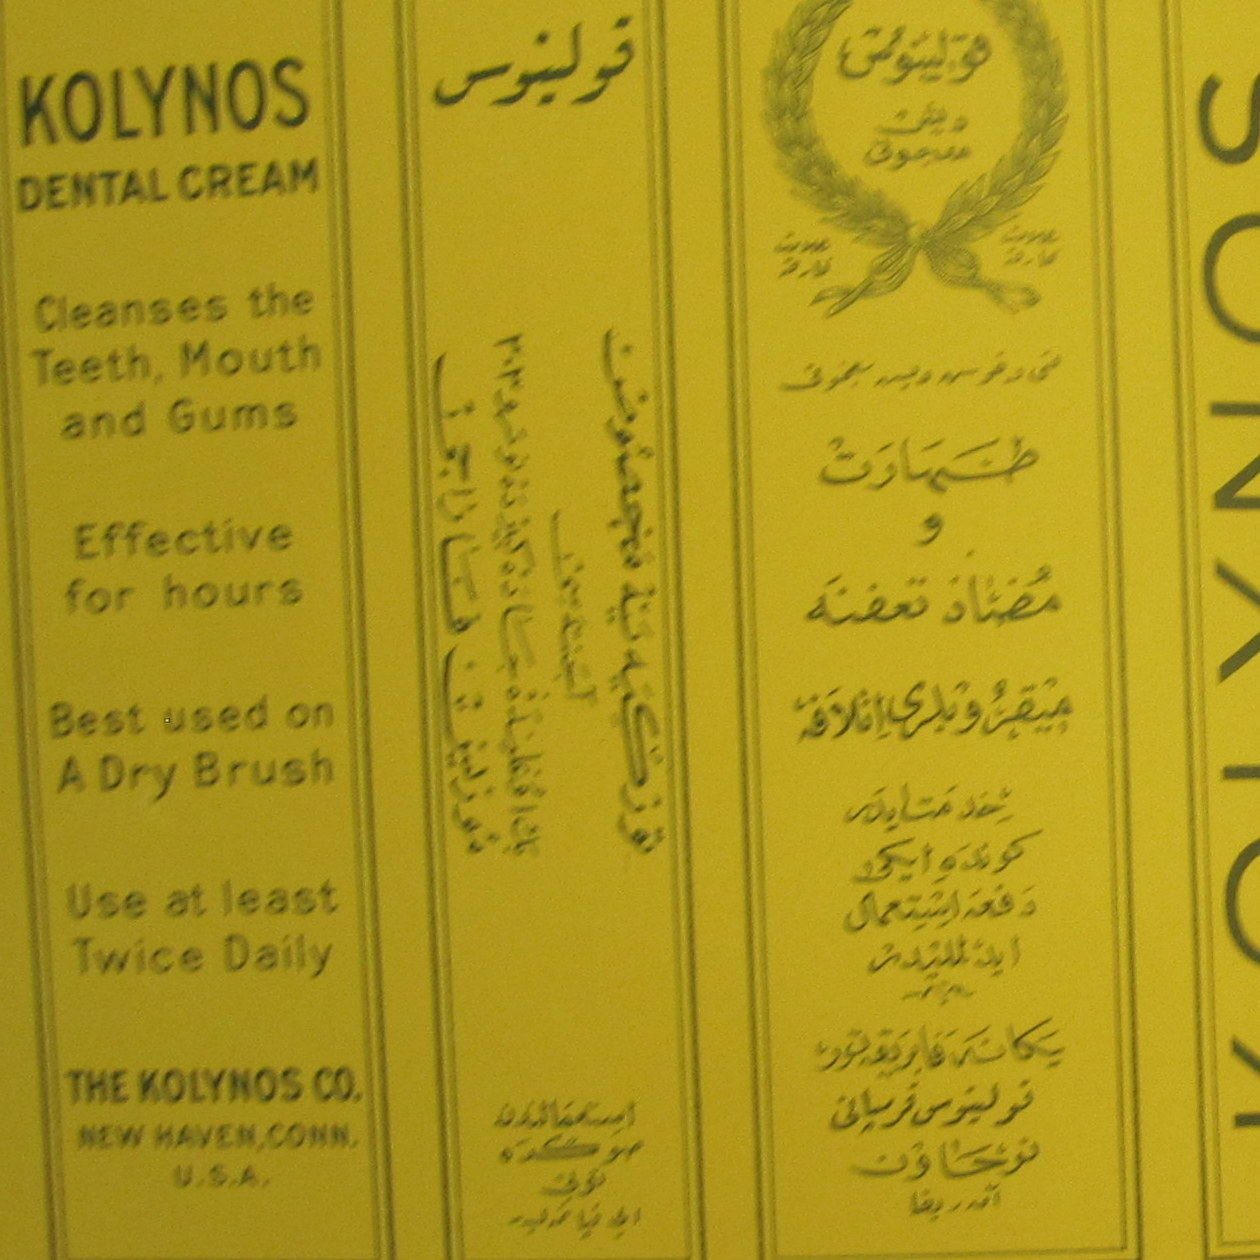 Turkish Knockoff Toothpaste and Racist Product Marketing in the 1920s US